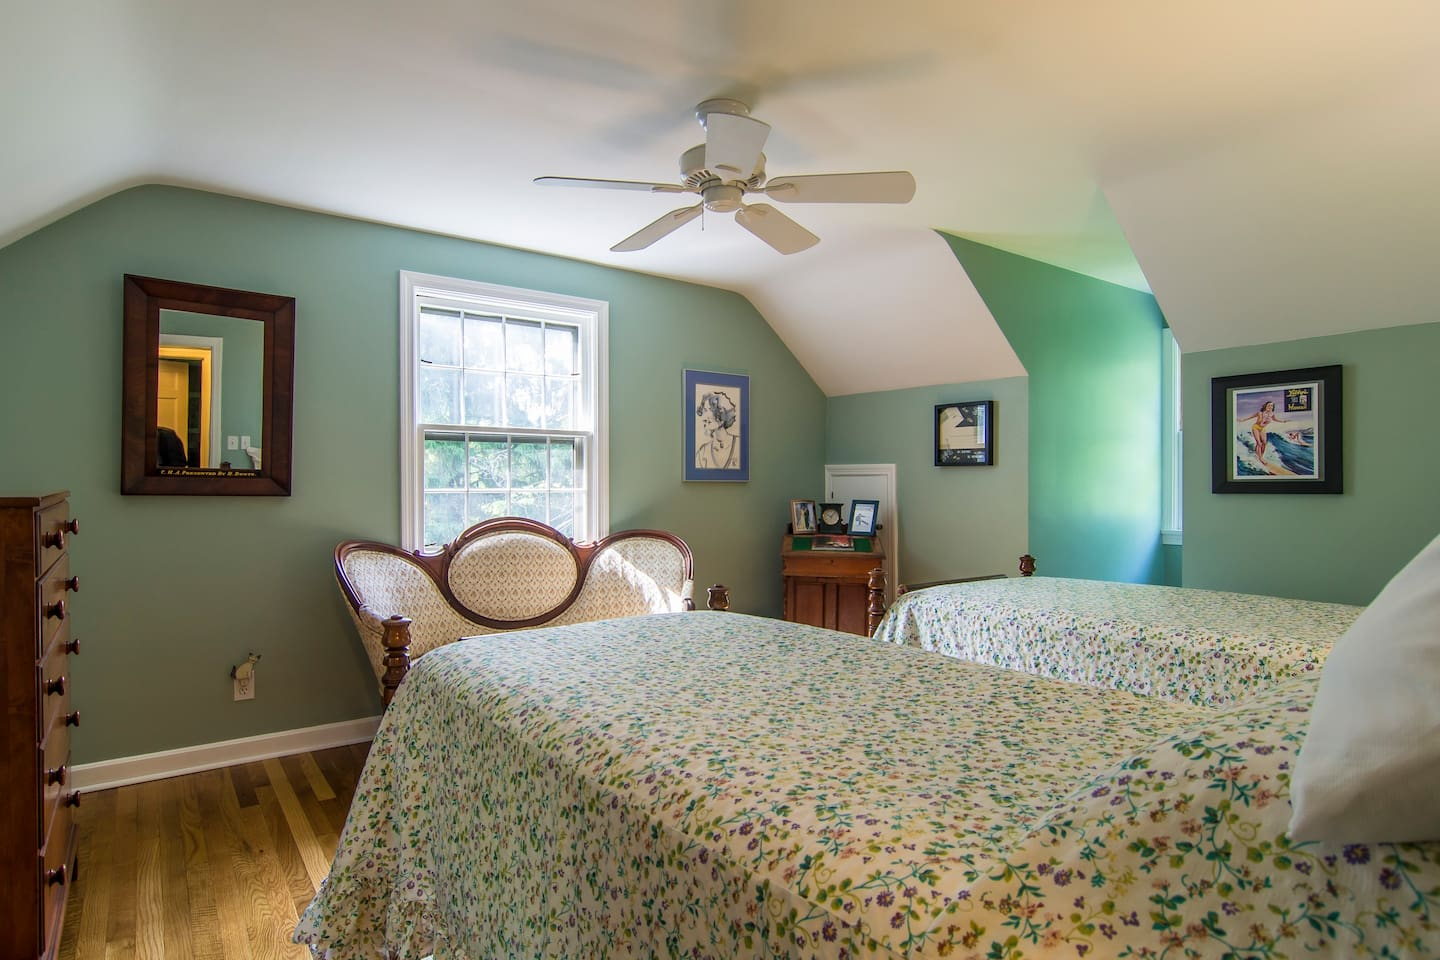 Lovely rural setting less than one mile from the town center of Chagrin Falls.